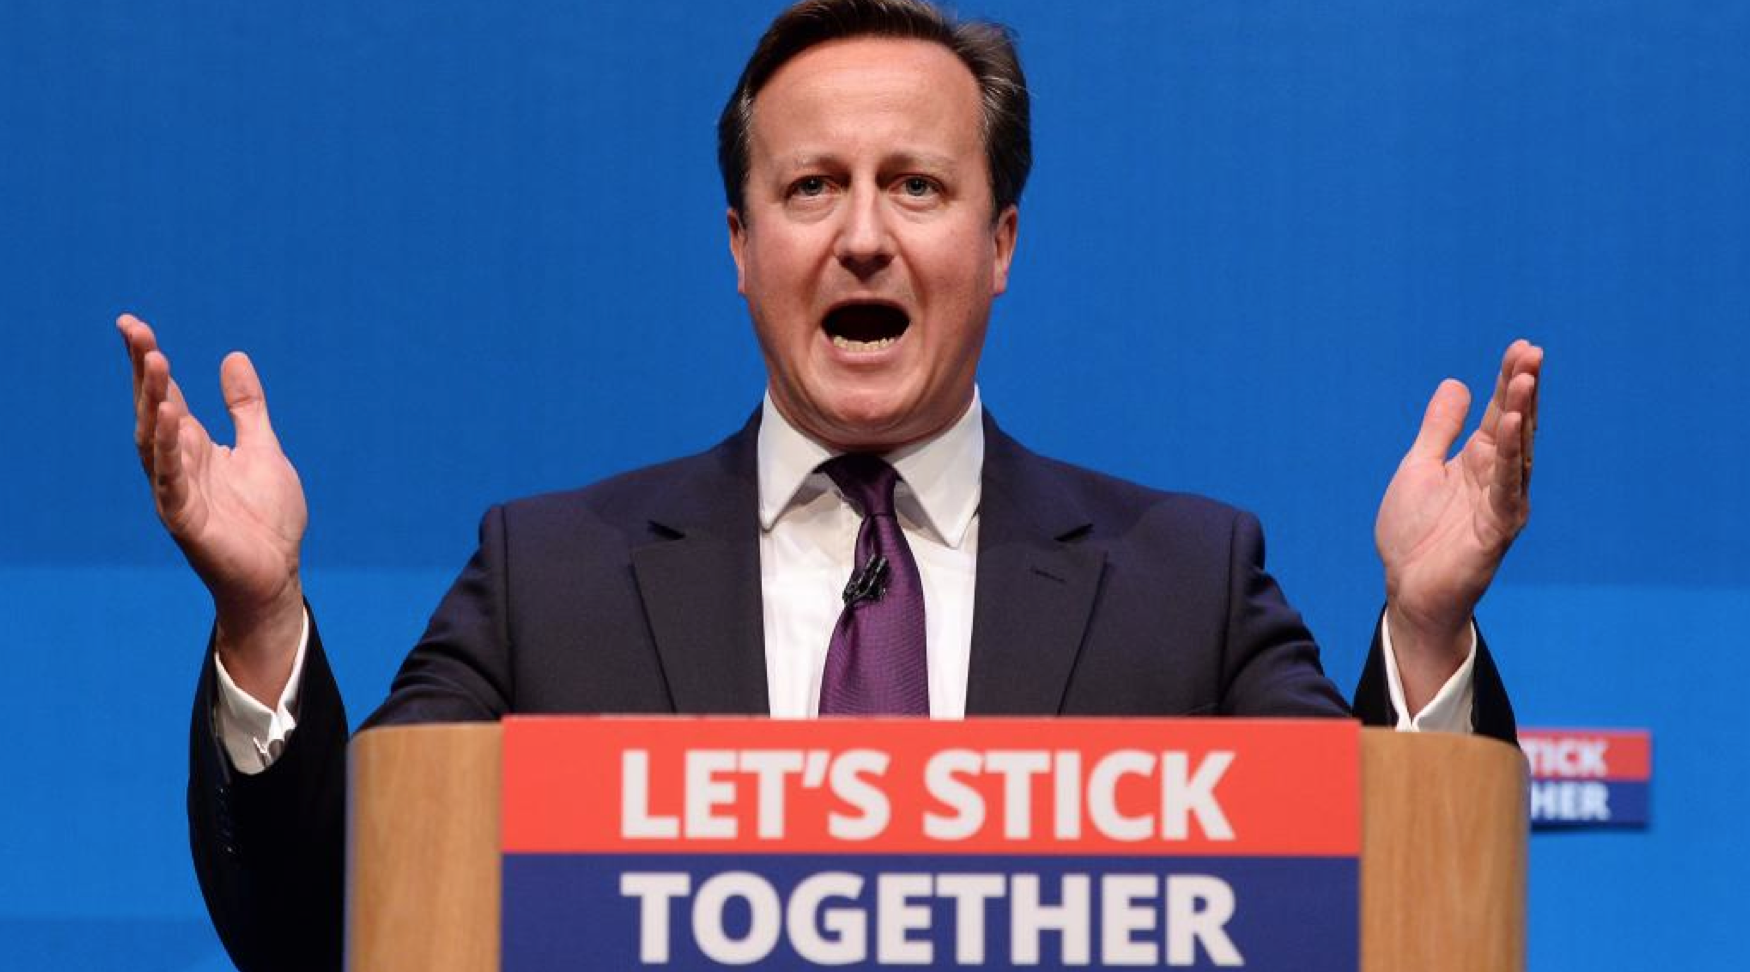 Cameron Promises New Constitutional Settlement for UK